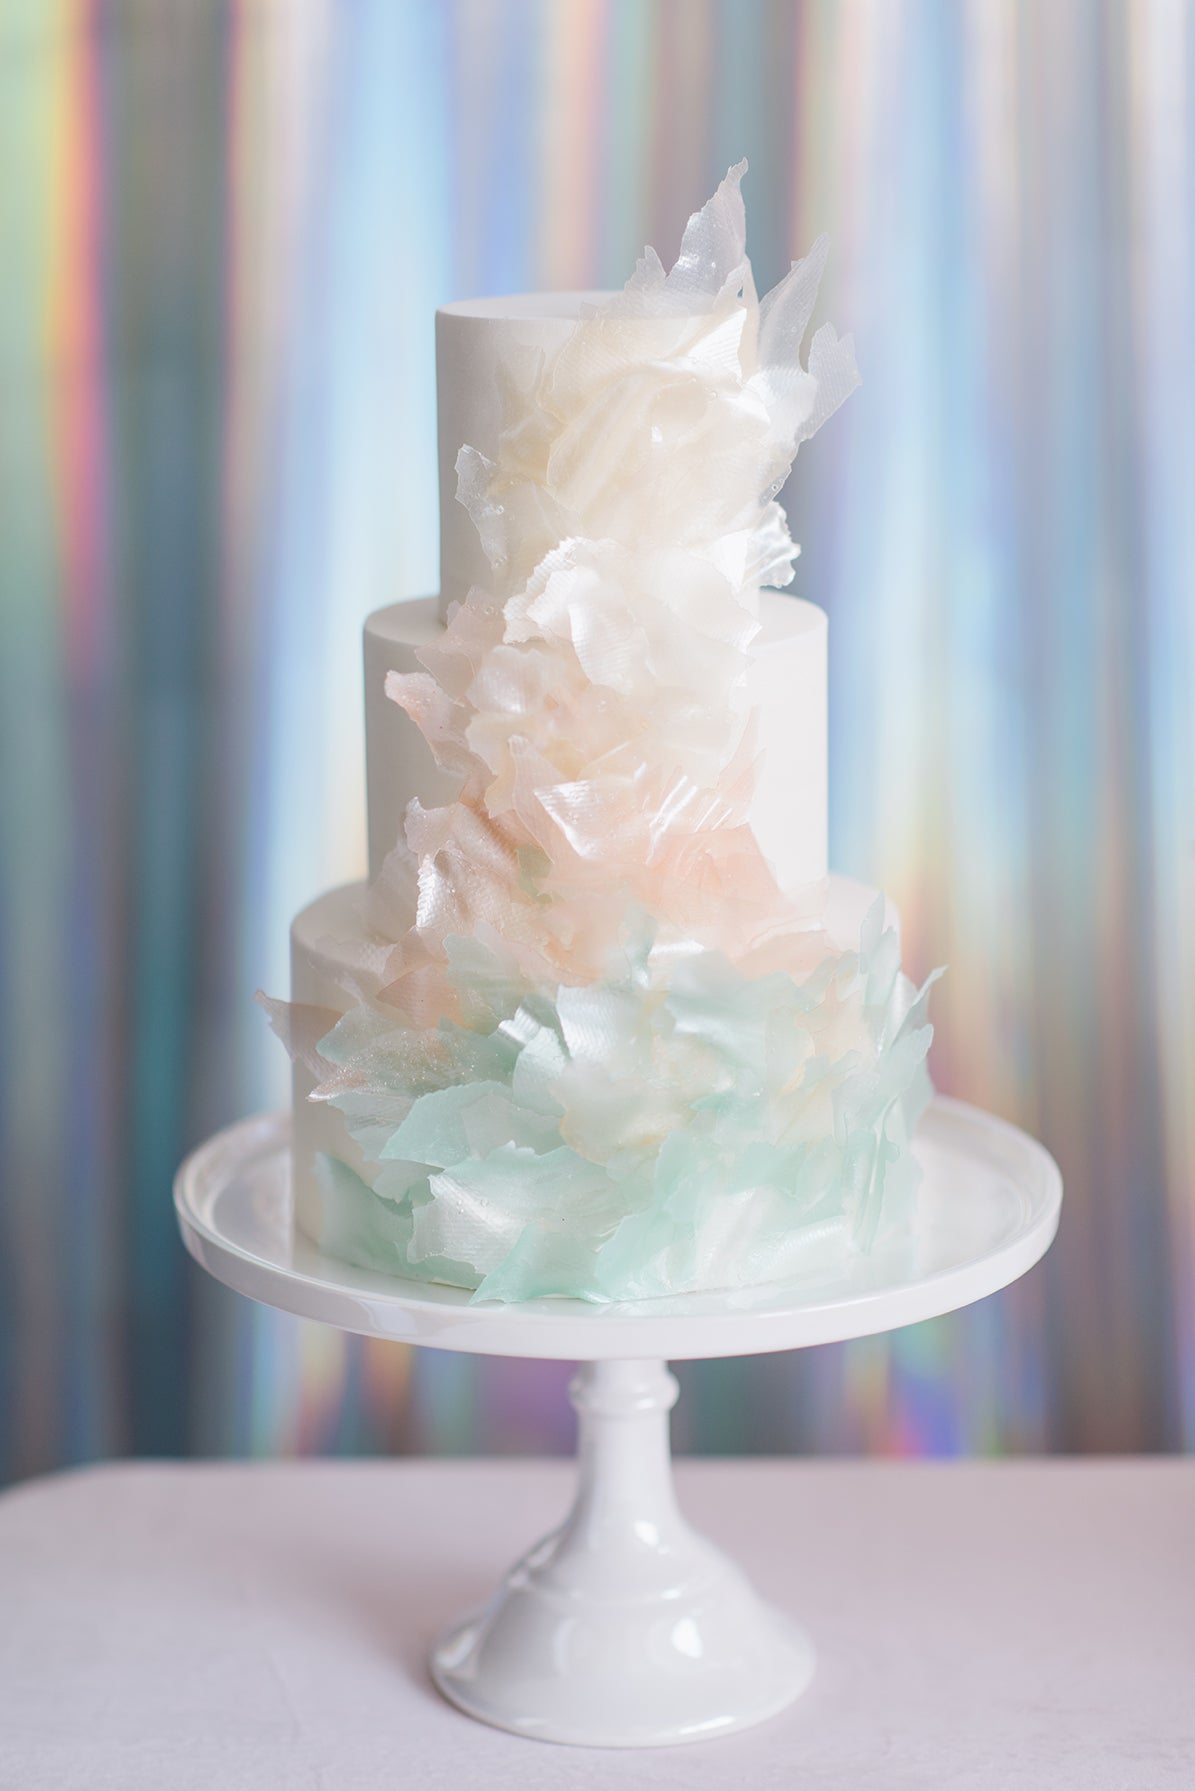 Iridescent Wedding Cake | 6 Ideas for an Iridescent Wedding | My Wedding Favors